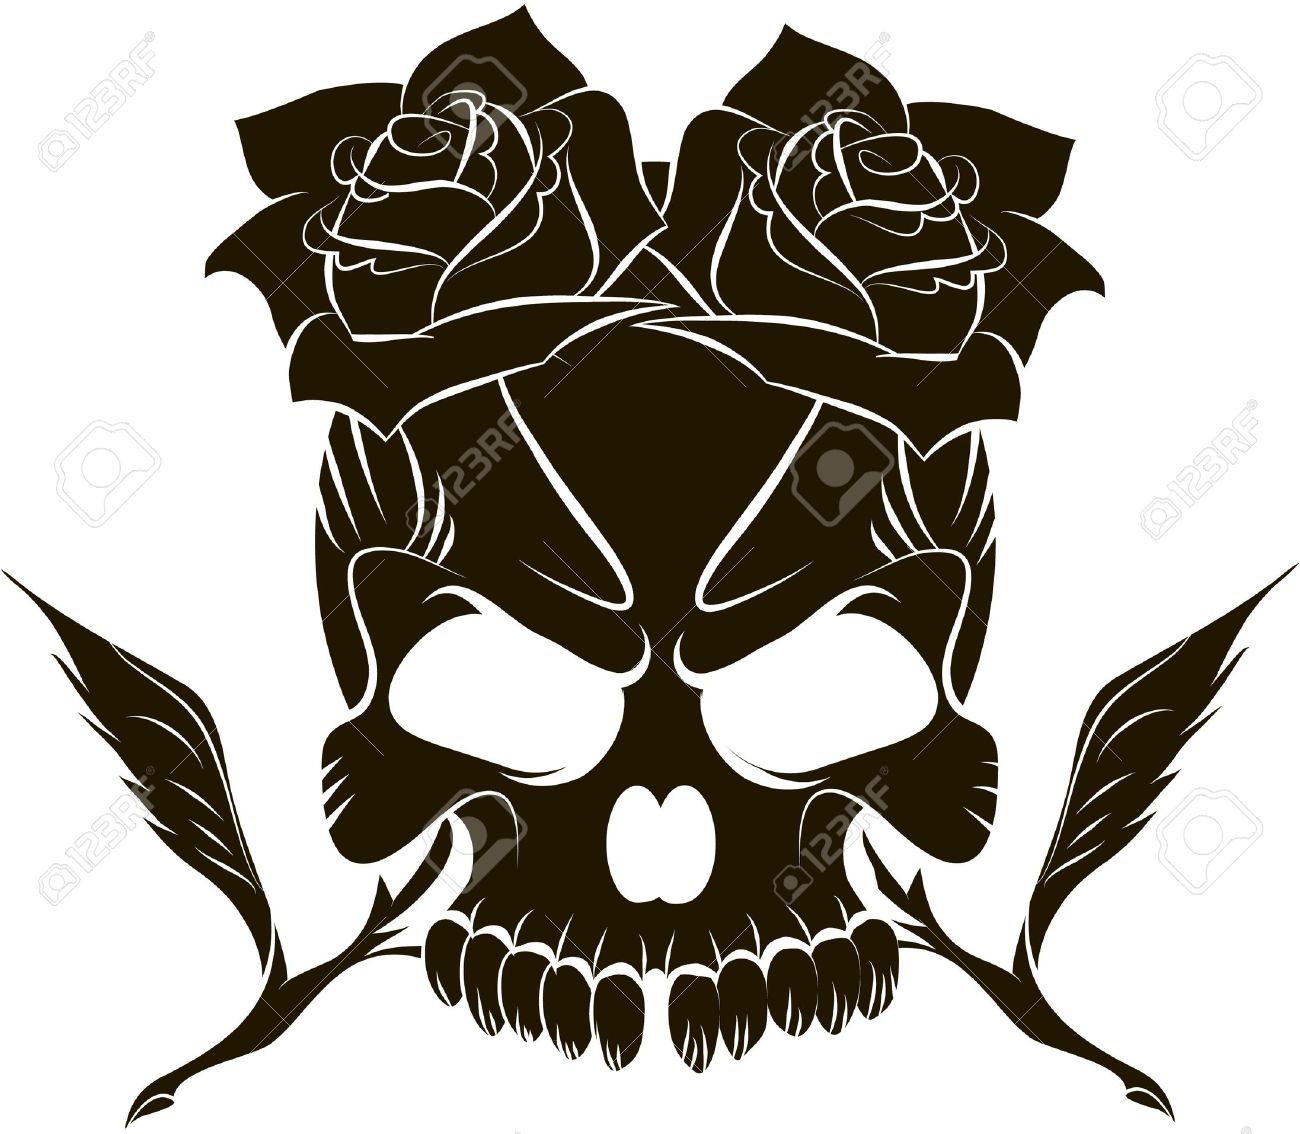 Pirate Skull And Two Roses Royalty Free Cliparts, Vectors, And.